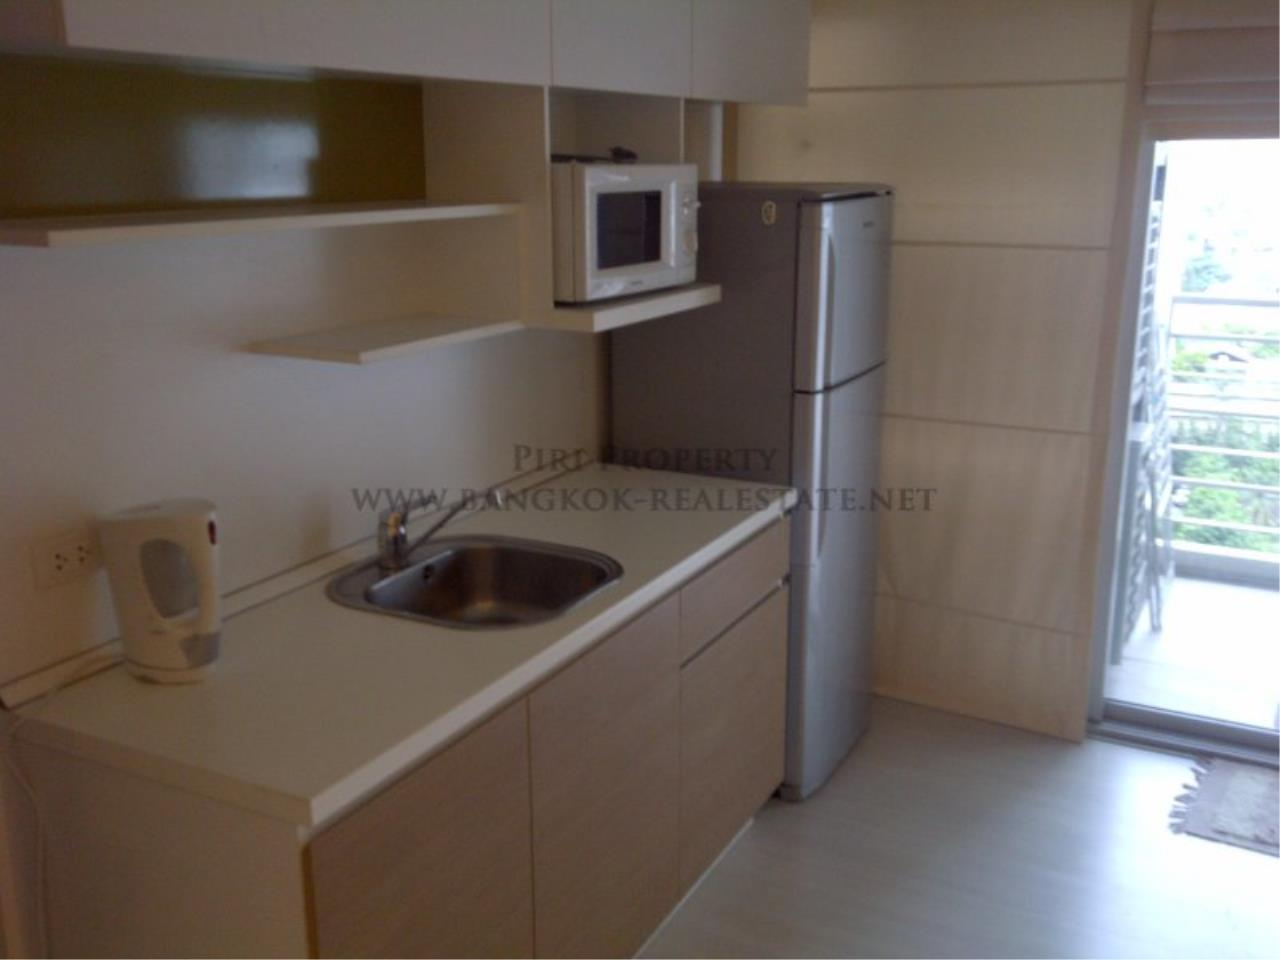 Piri Property Agency's The Room Lad Prao - 2 Bedroom on High Floor - 61SQM - 25K 8